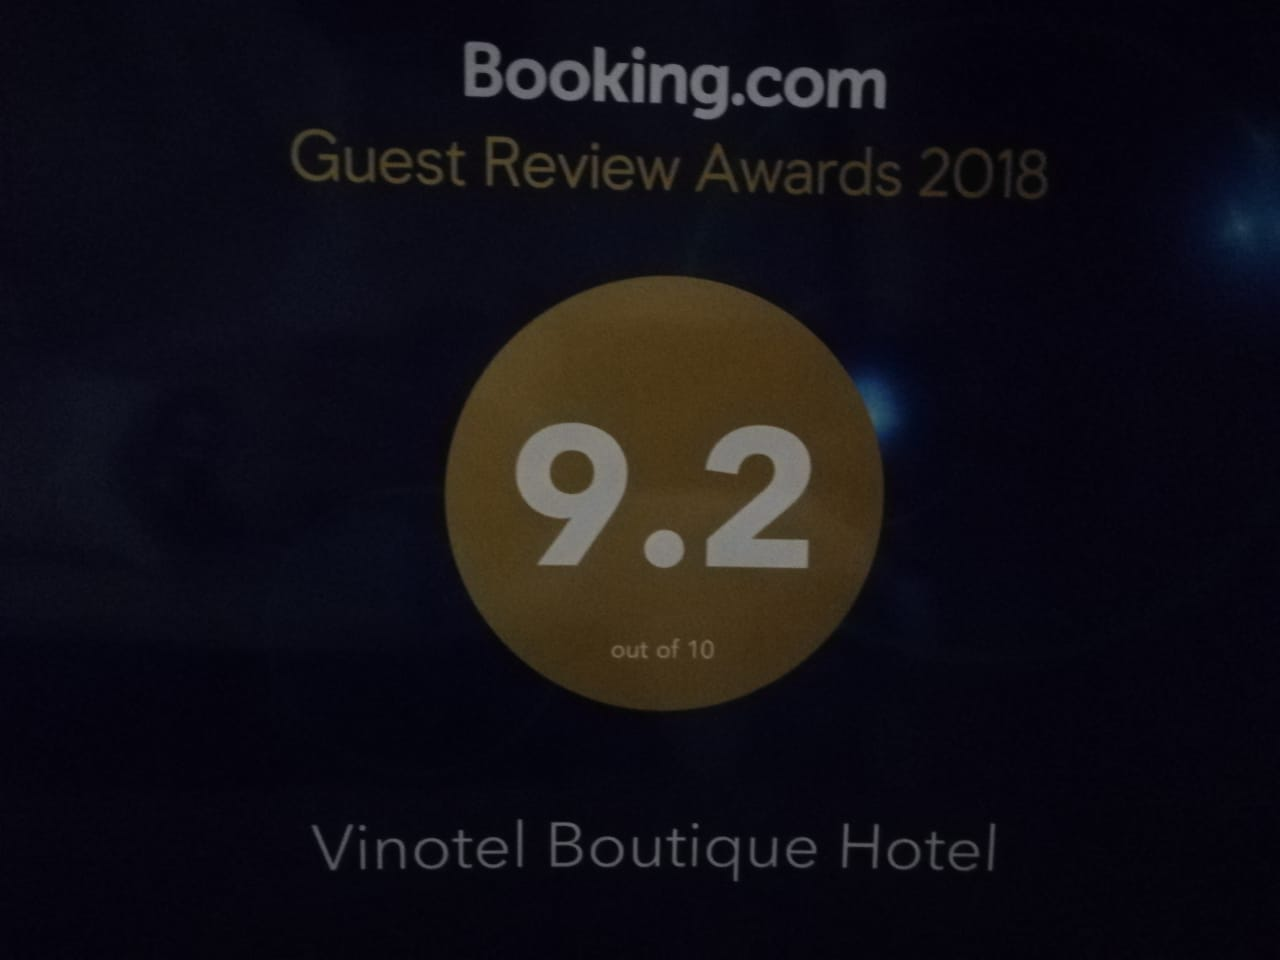 Booking award 2015 (9.2 score)